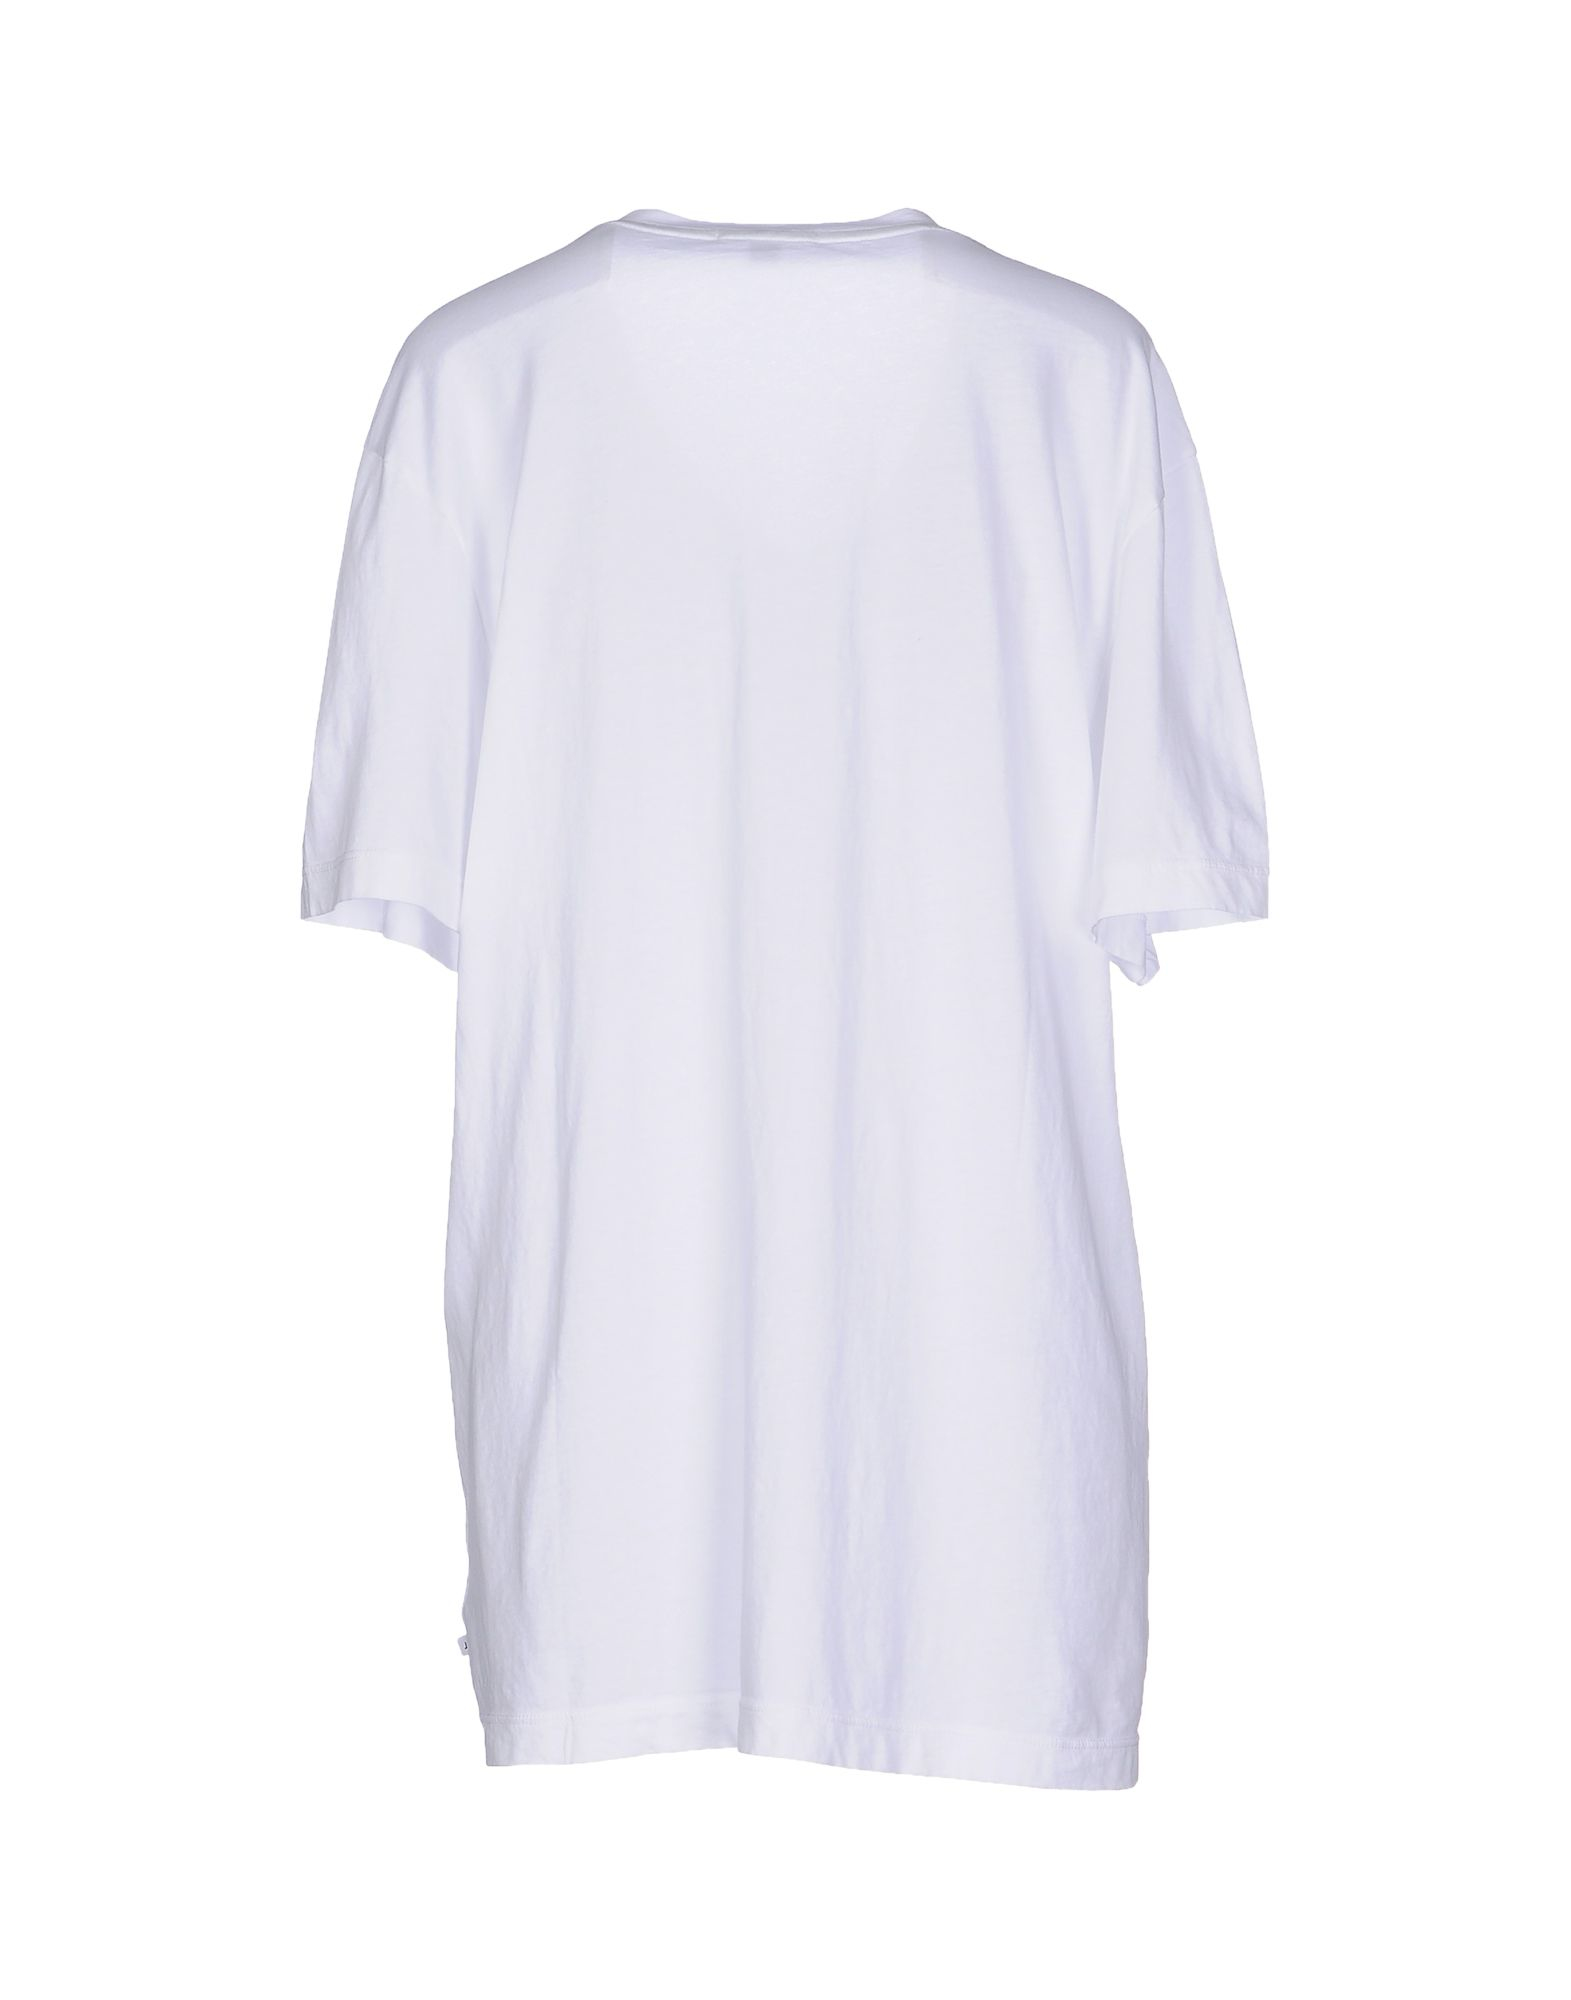 james perse t shirt in white lyst